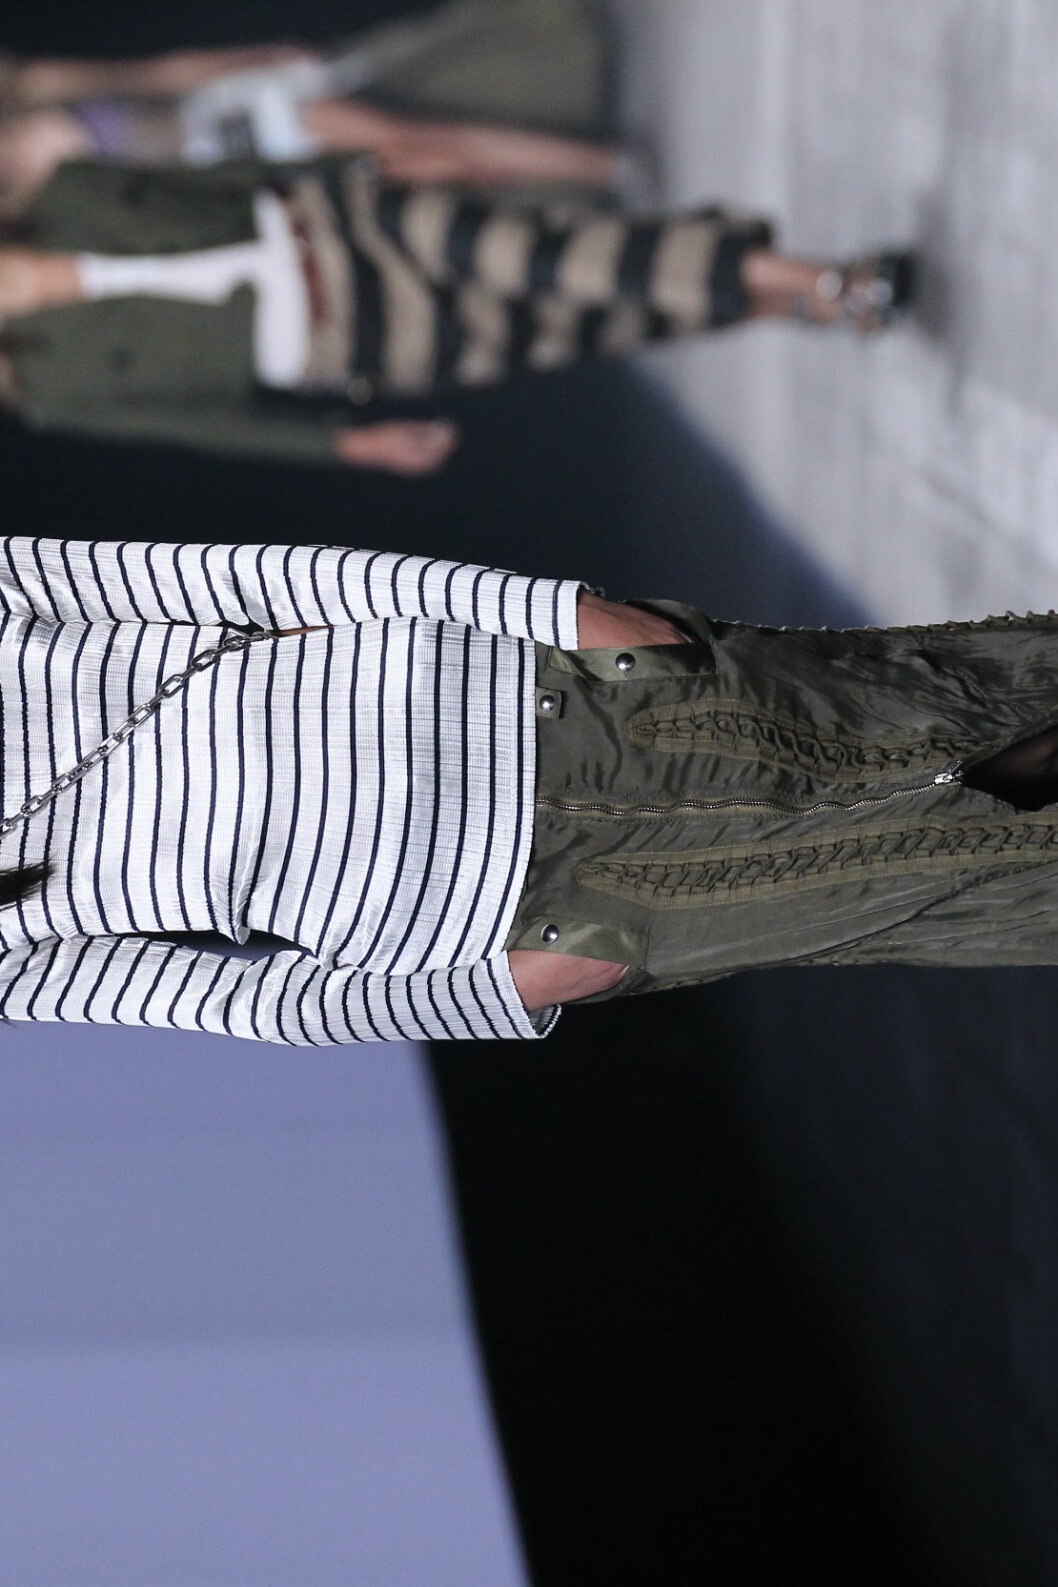 ALEXANDER WANG at New York Fashion Week, Ready to Wear, Spring Summer 2016 in New York, USA September 12,  2015. CAP/GOL ÃGOL/Capital Pictures Foto: CapitalPictures